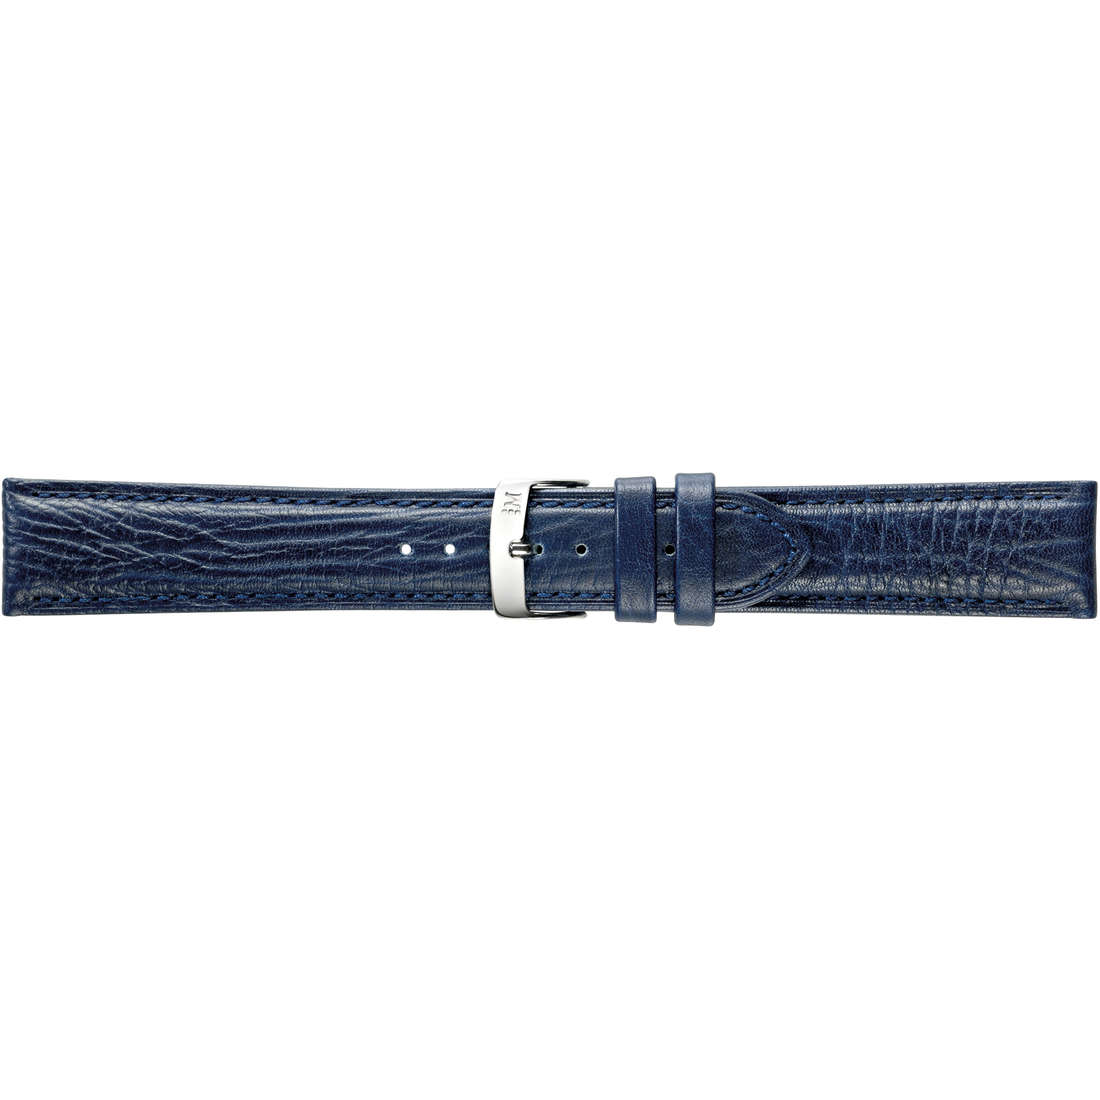 watch watch bands watch straps man Morellato Linea Sport A01X4335713062CR18